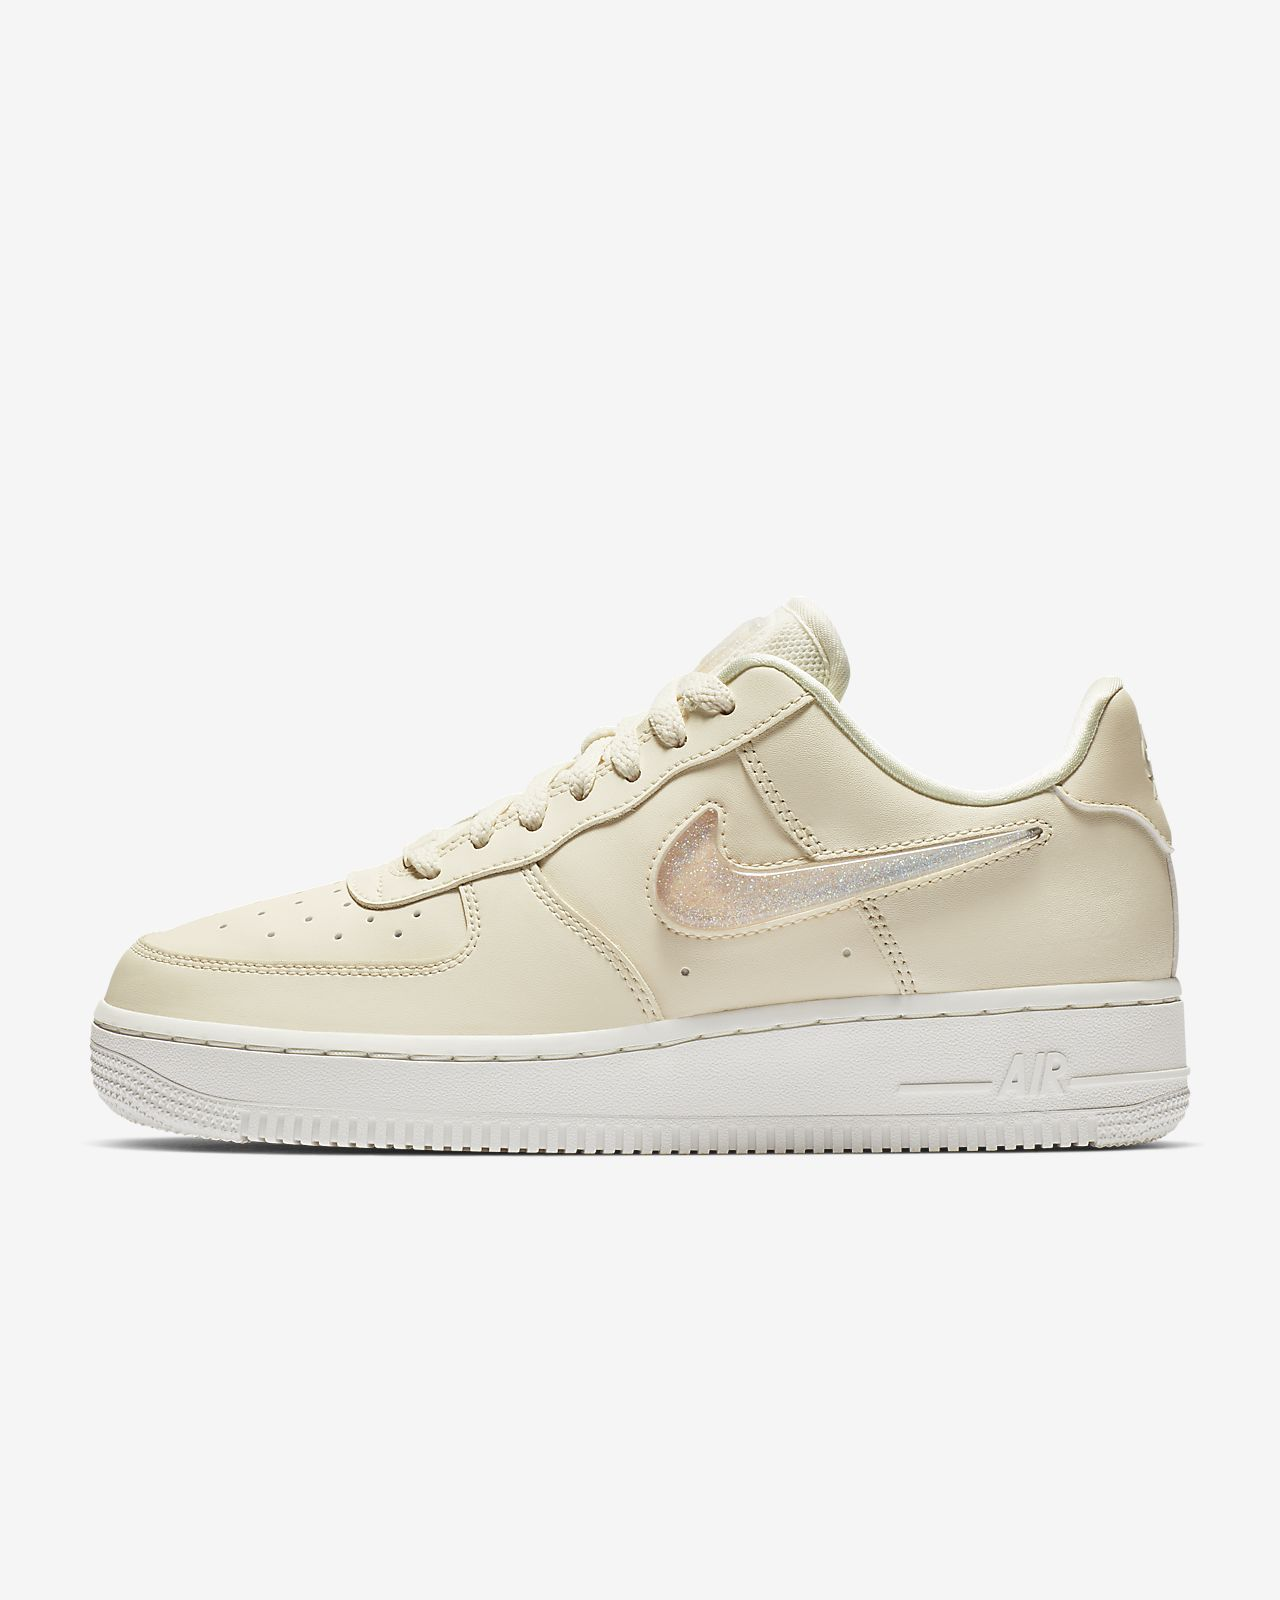 8e6424184d01 Nike Air Force 1  07 SE Premium Women s Shoe. Nike.com ZA